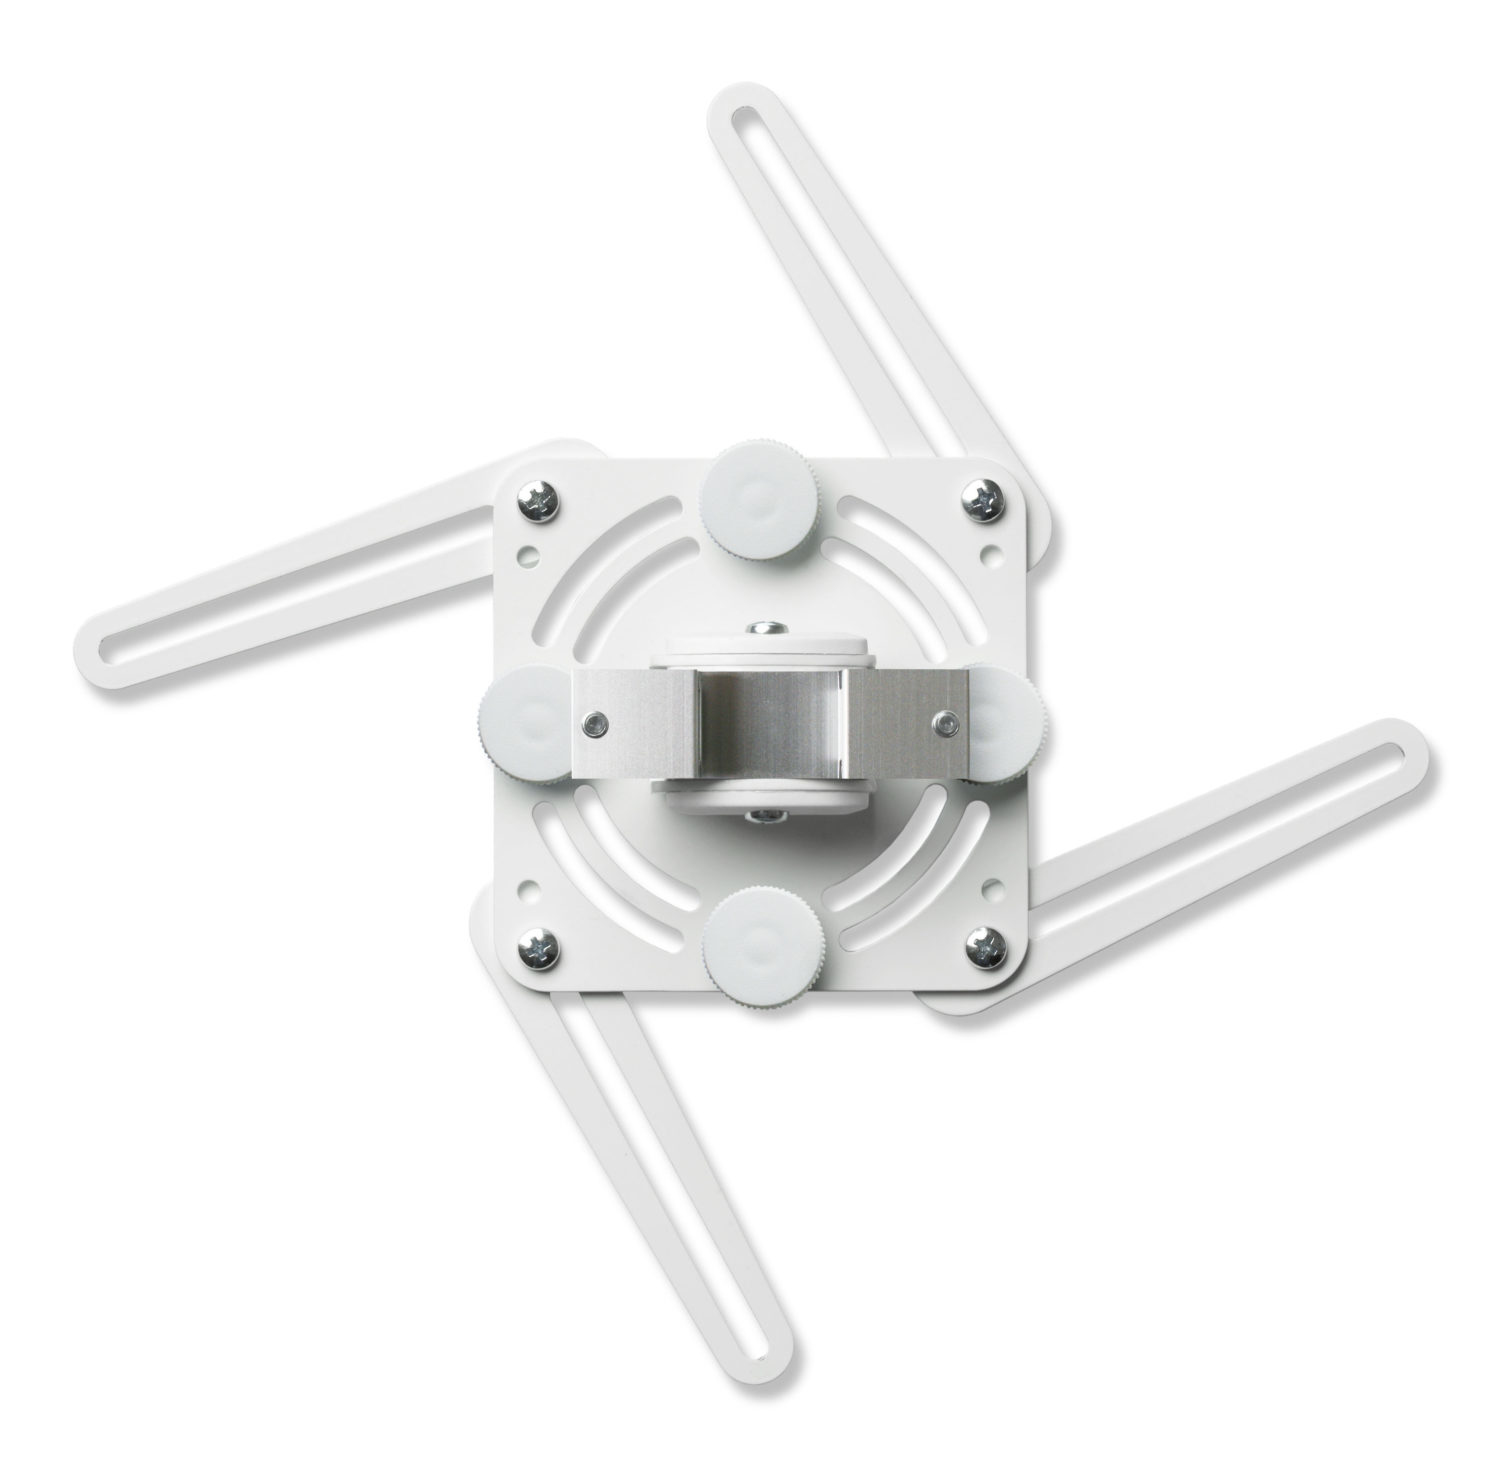 SMS Smart Media Solutions AE022021 projector mount accessory White